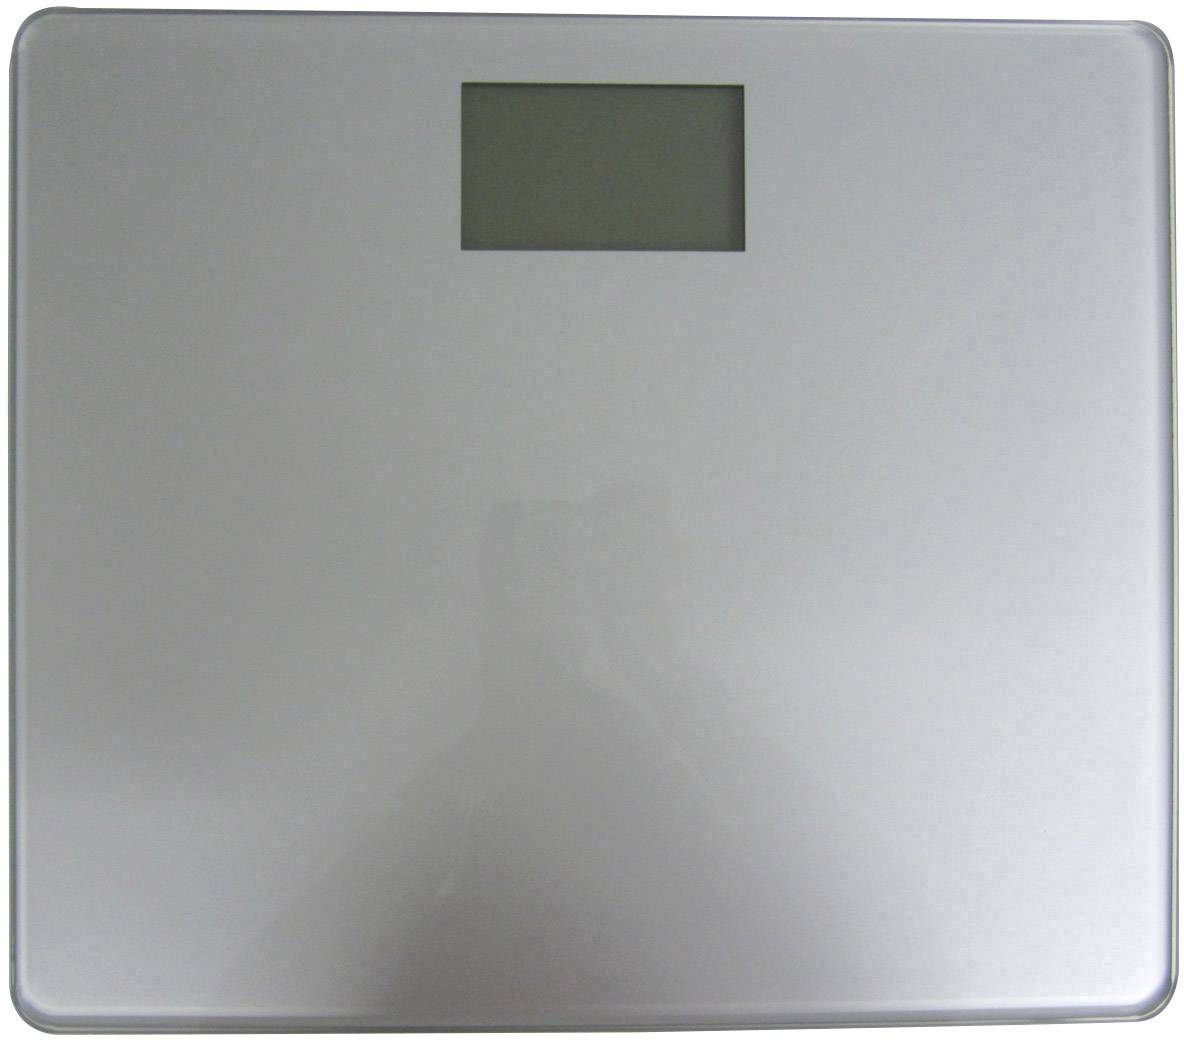 Bathroom Scales White Step On Weighing Scale